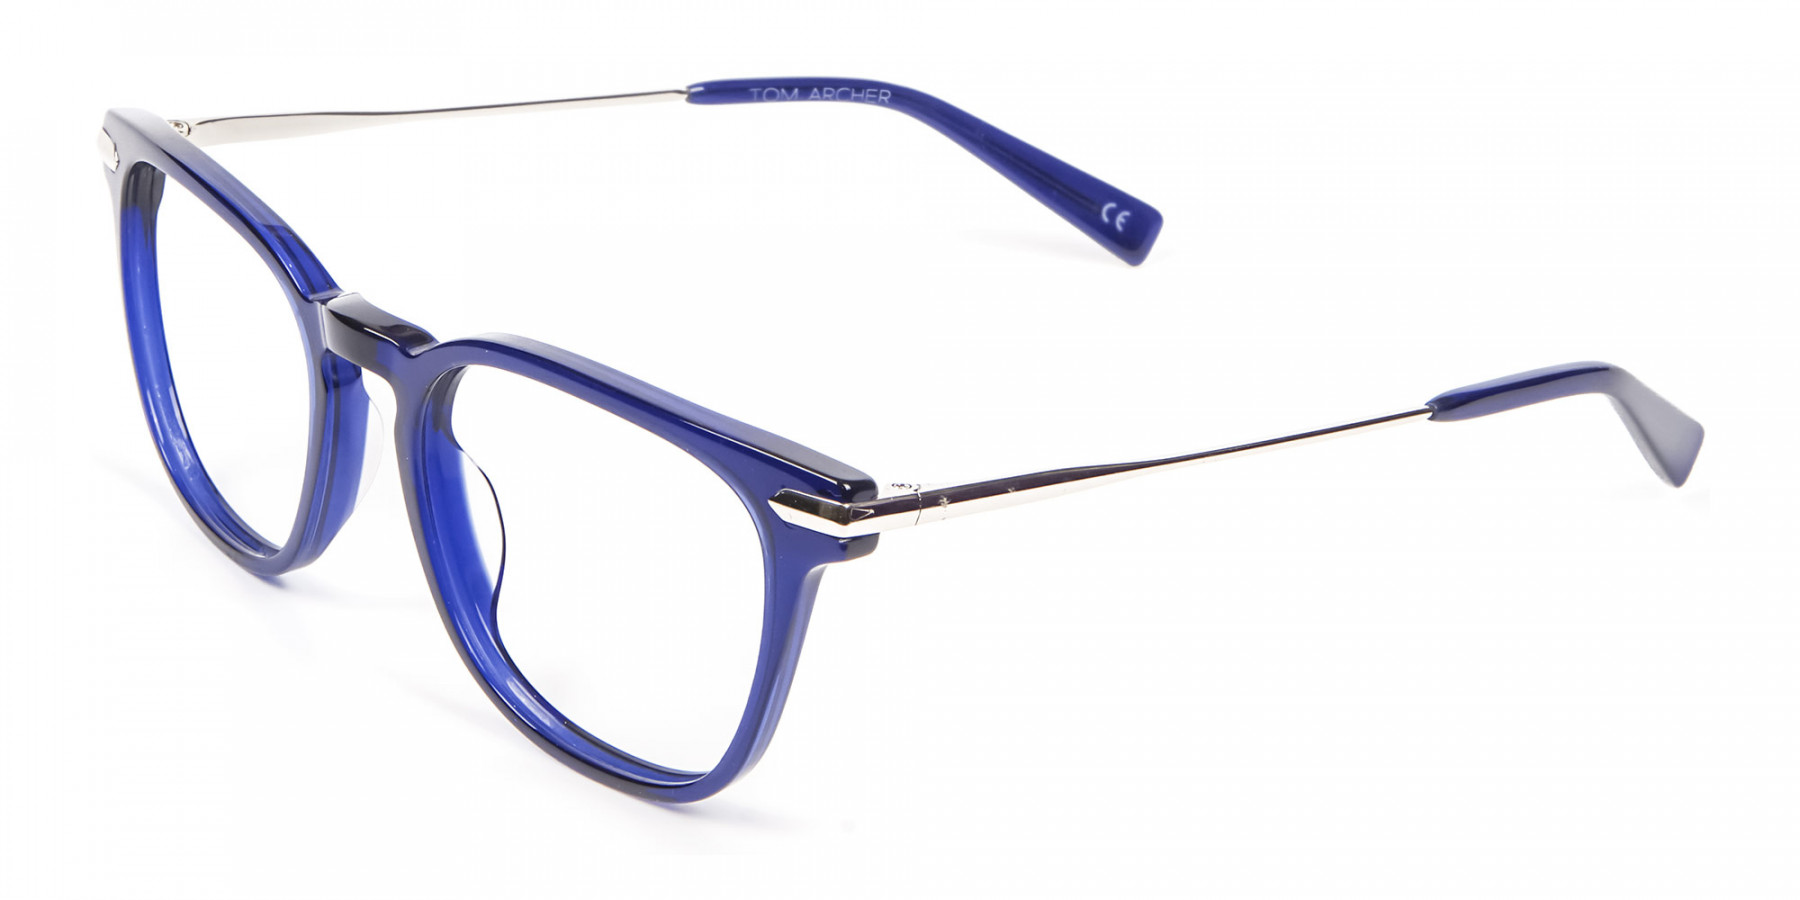 Luxurious Look Navy Blue Glasses